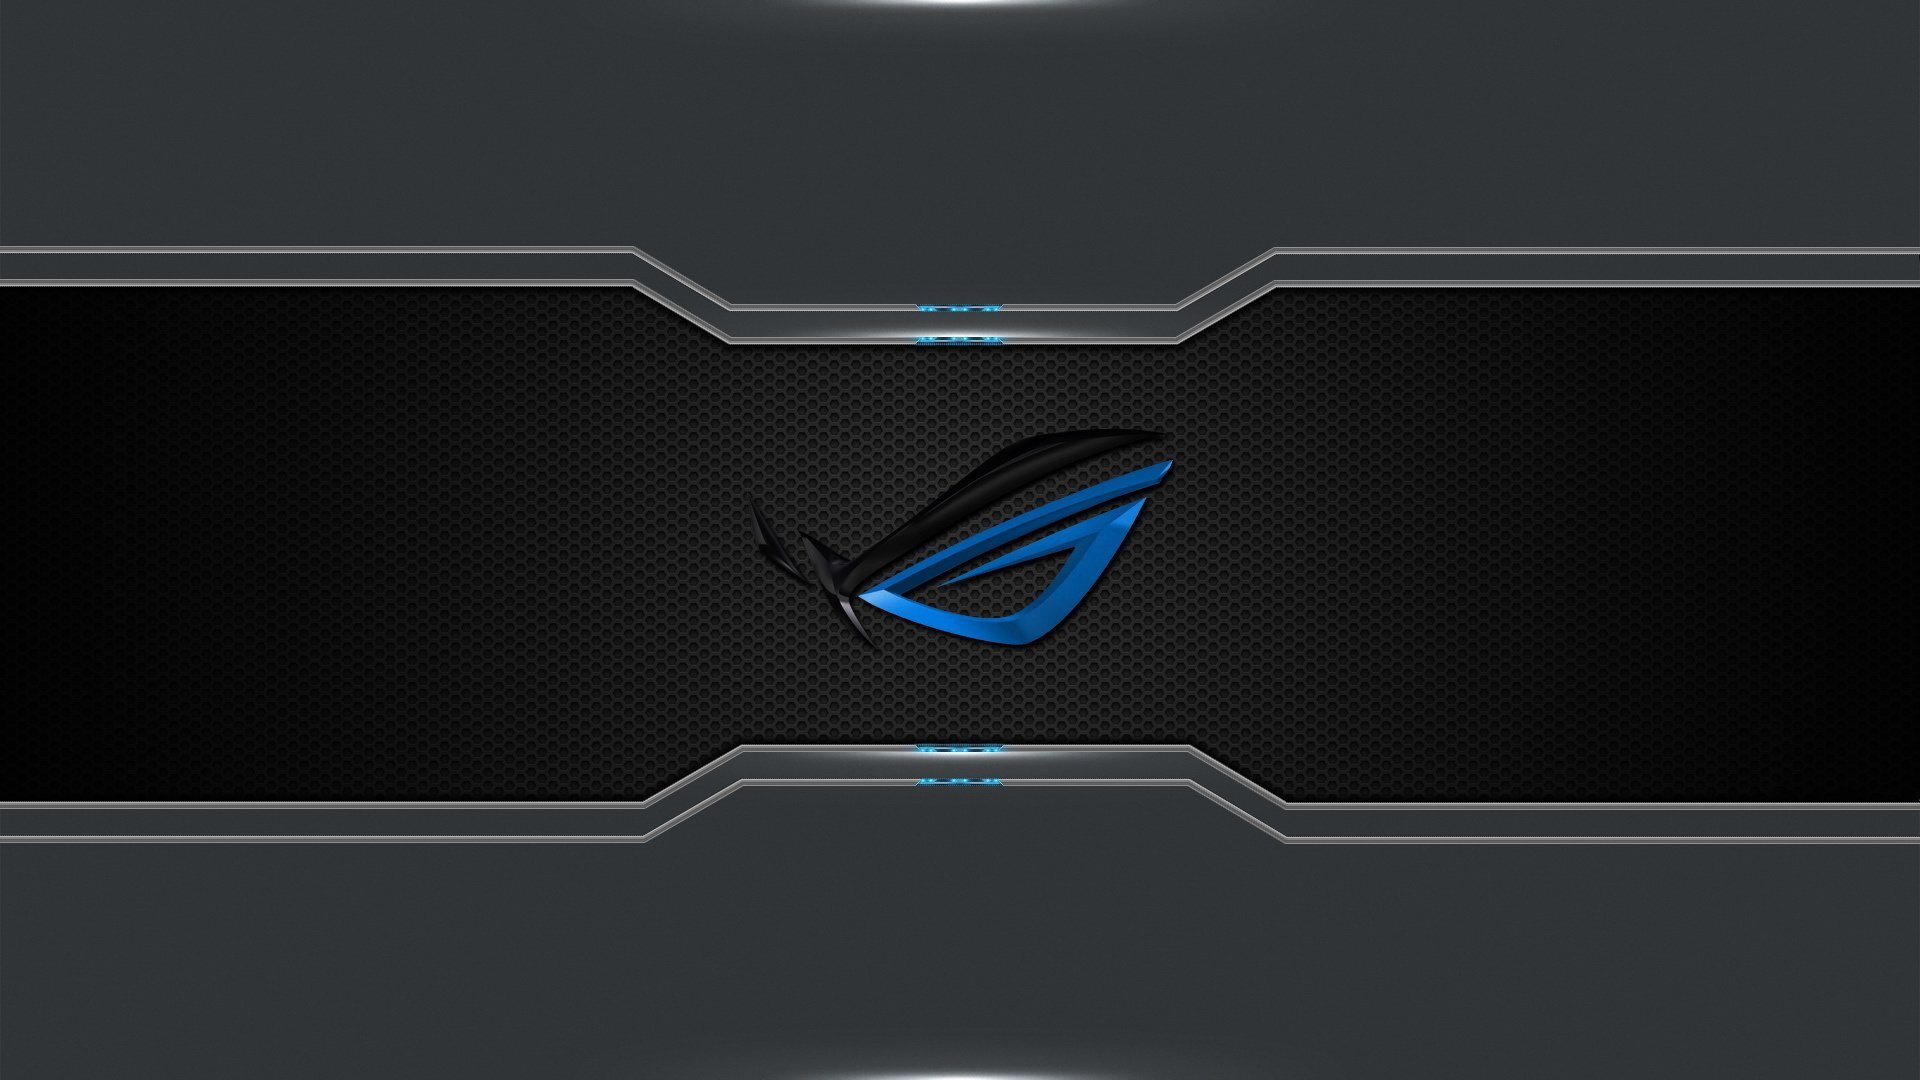 asus blue rog wallpaper - photo #19